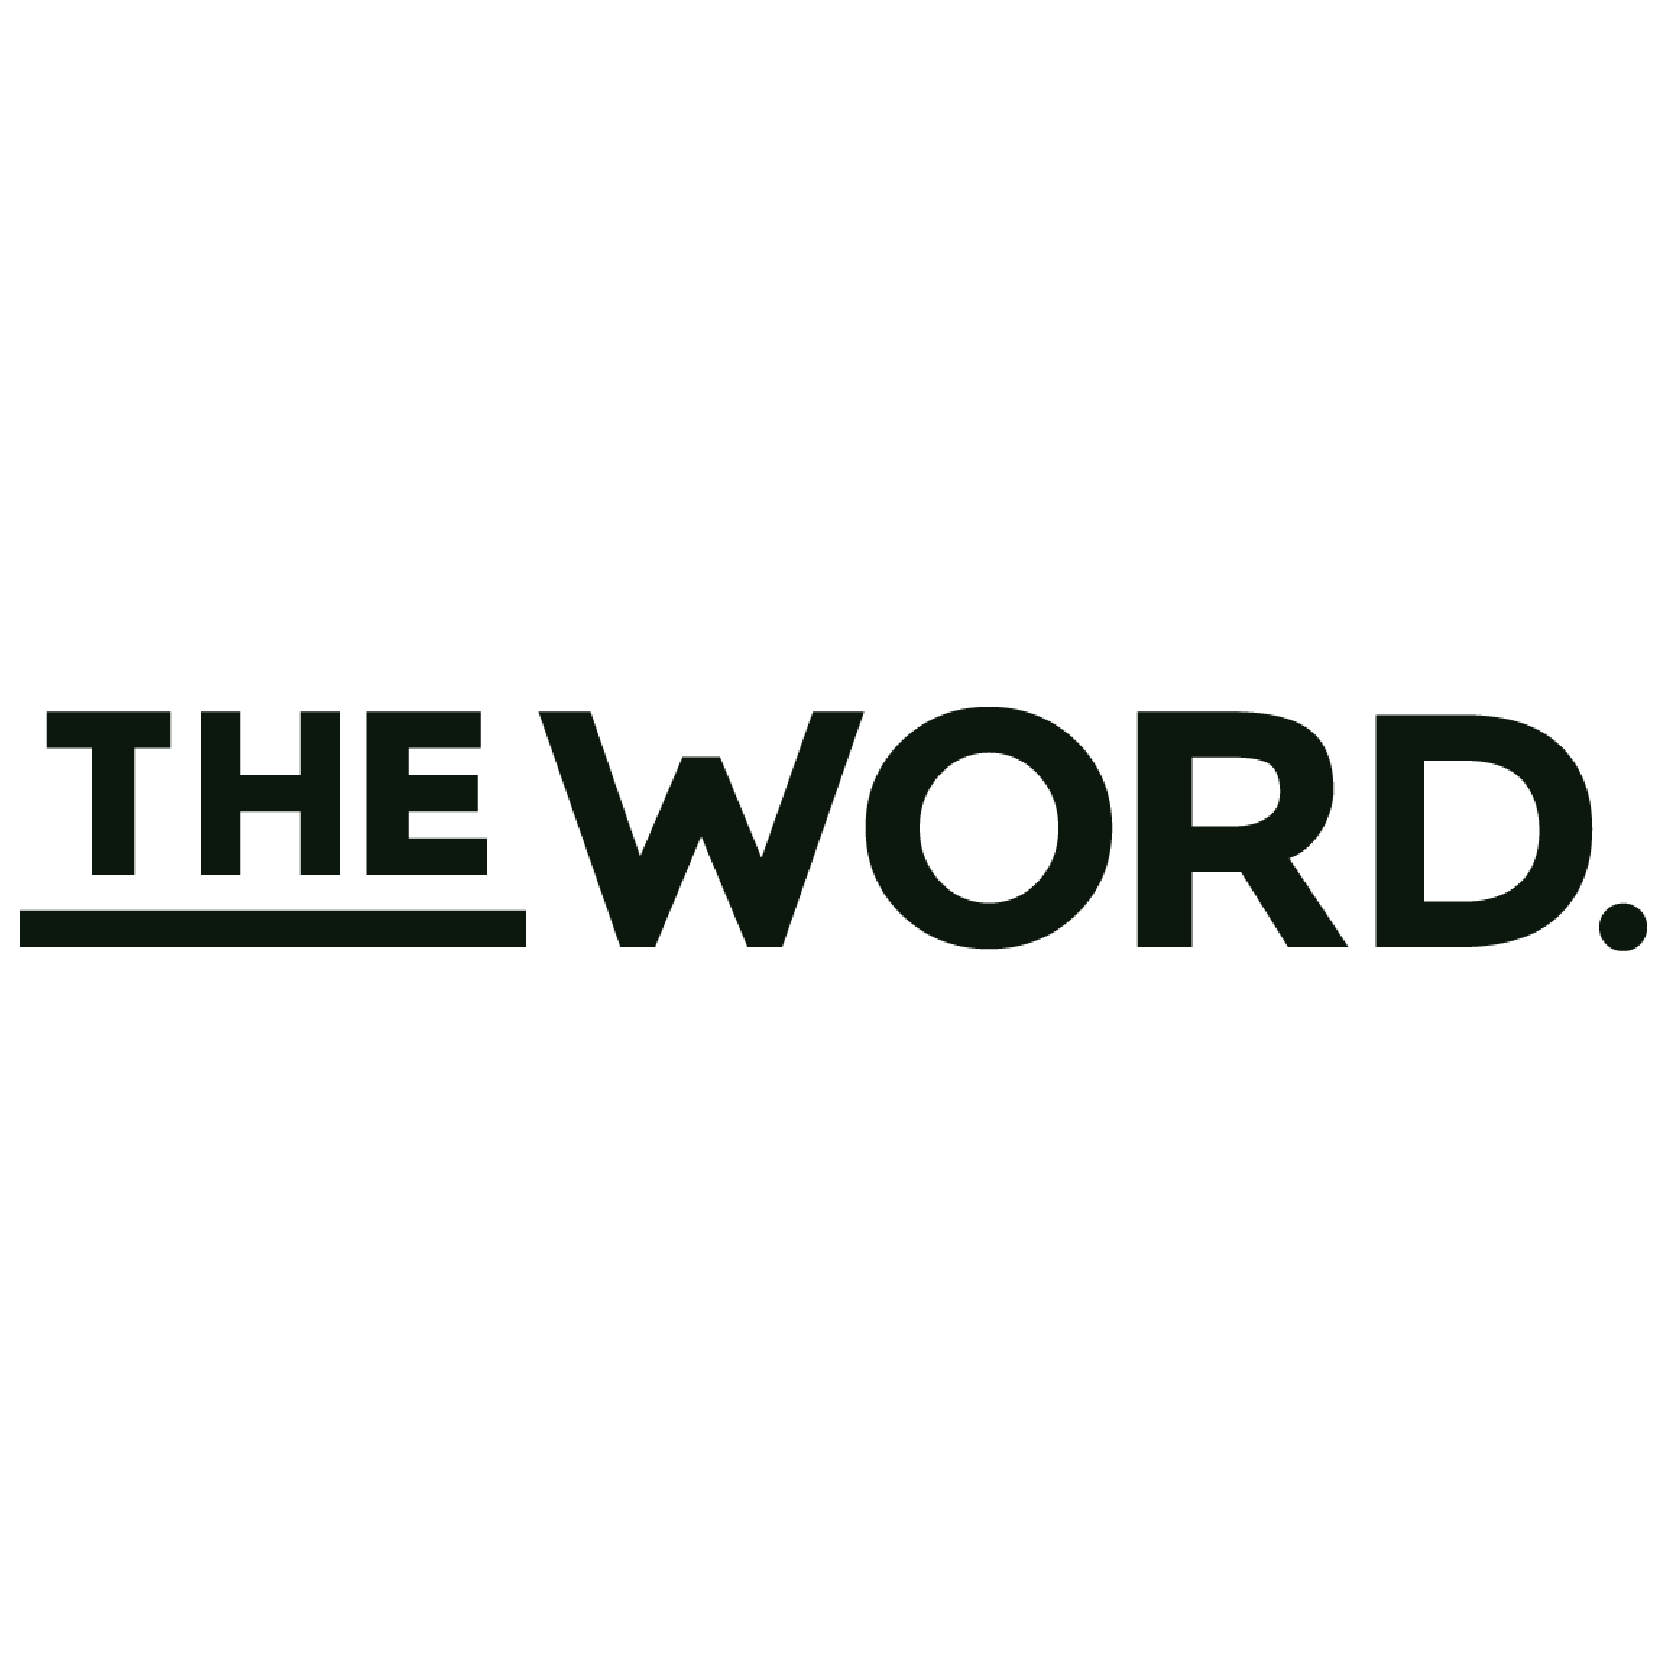 theword-01.png